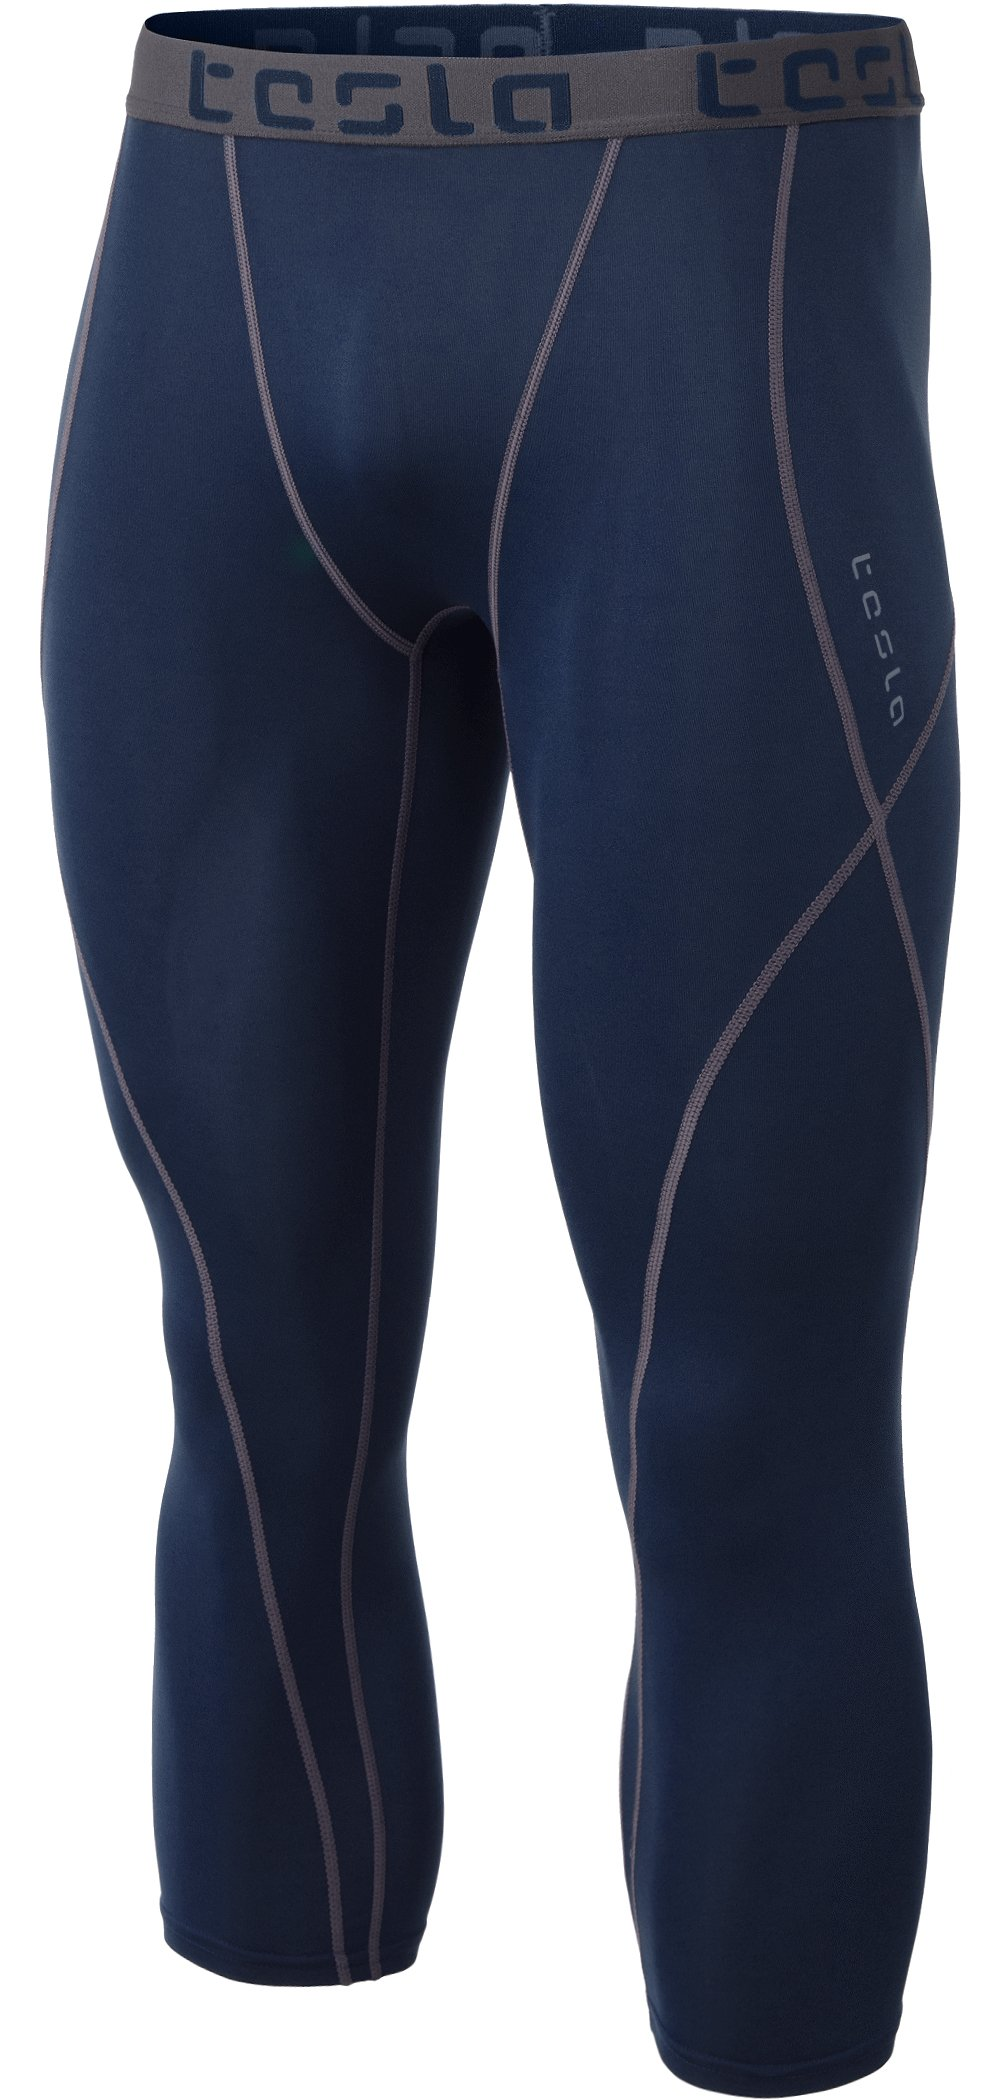 TSLA Men's Compression 3/4 Capri Pants Baselayer Cool Dry Sports Running Yoga Tights, Atheltic(muc18) - Navy, Small by TSLA